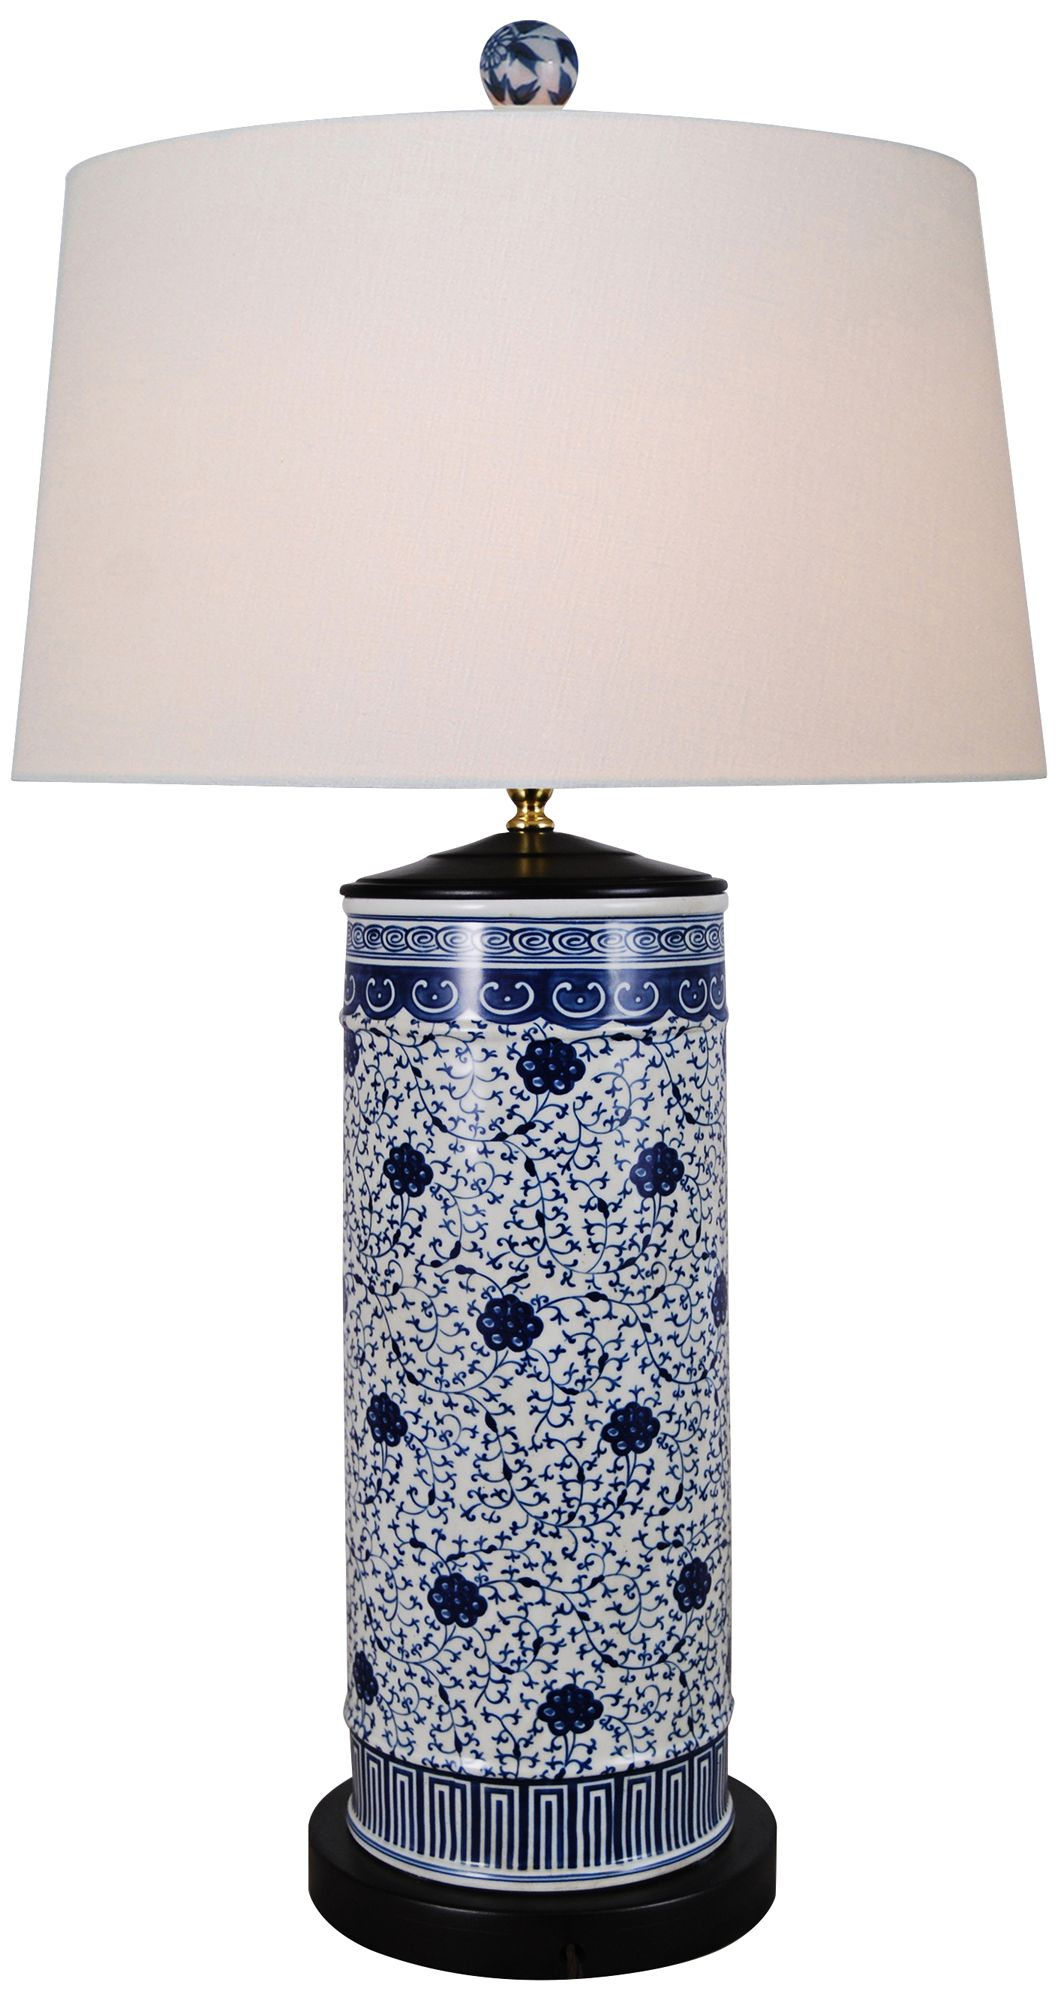 Amazing Floral Blue And White Cylinder Porcelain Table Lamp